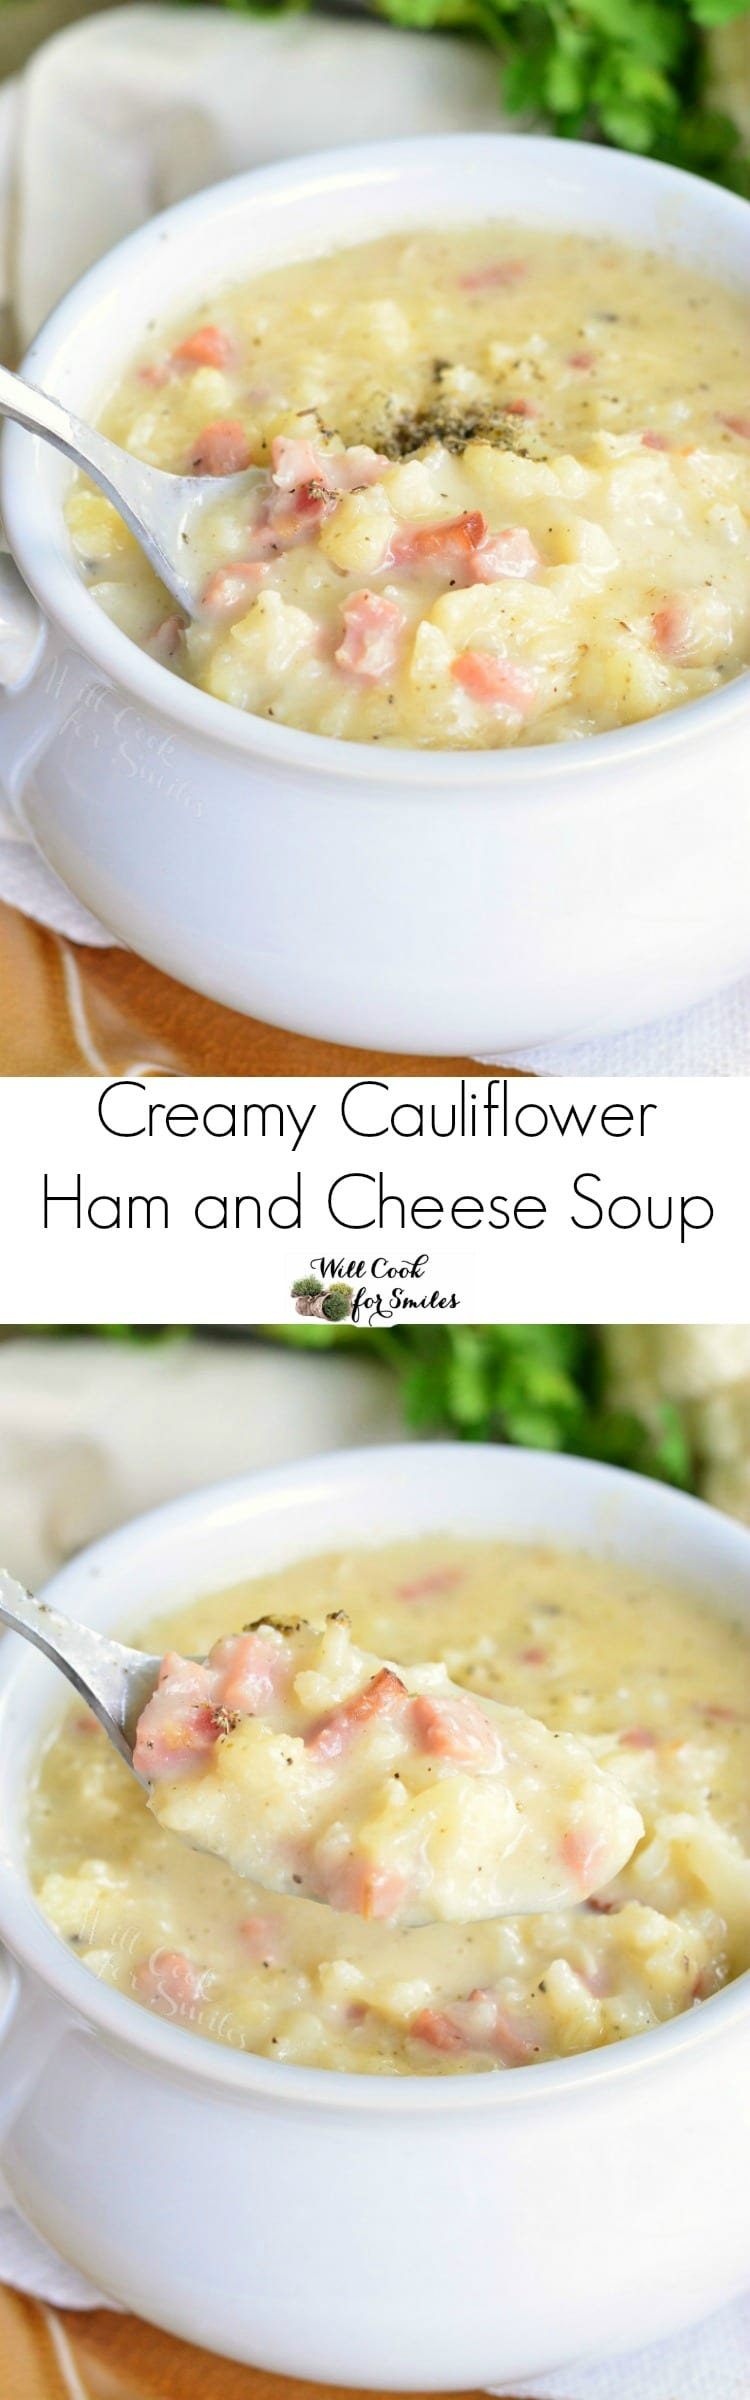 Creamy Cauliflower Ham and Cheese Soup. This soup recipe is made with cauliflower, ham, and white cheddar cheese, this soup is hearty enough without having any pasta or potatoes packed in it. #cauliflower #soup #hamsoup #ham